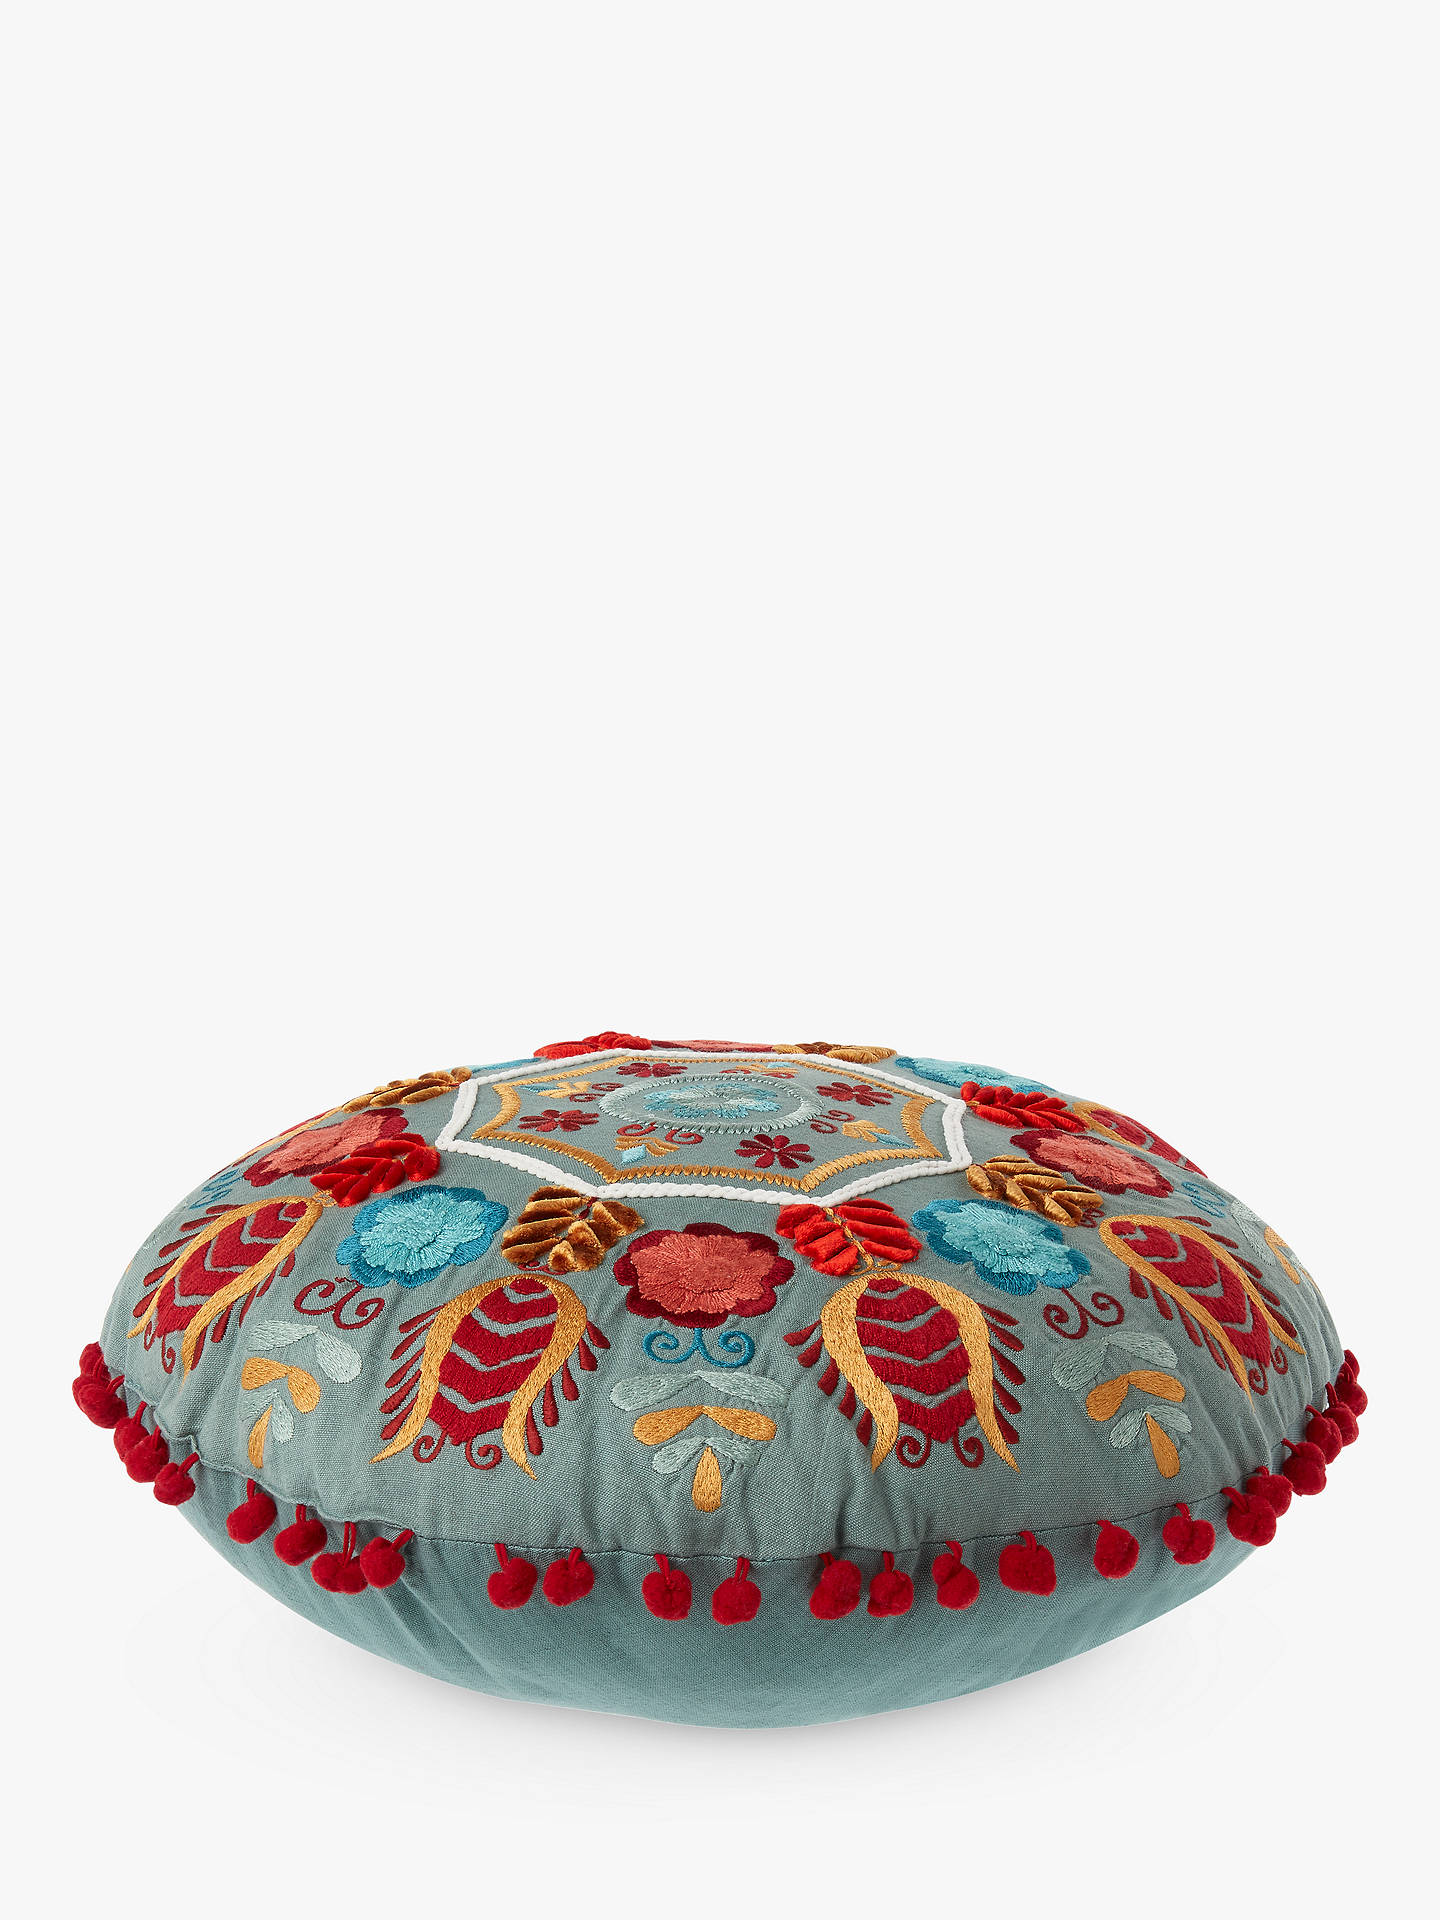 BuyJohn Lewis & Partners Folklore Round Embroidered Cushion, Multi Online at johnlewis.com